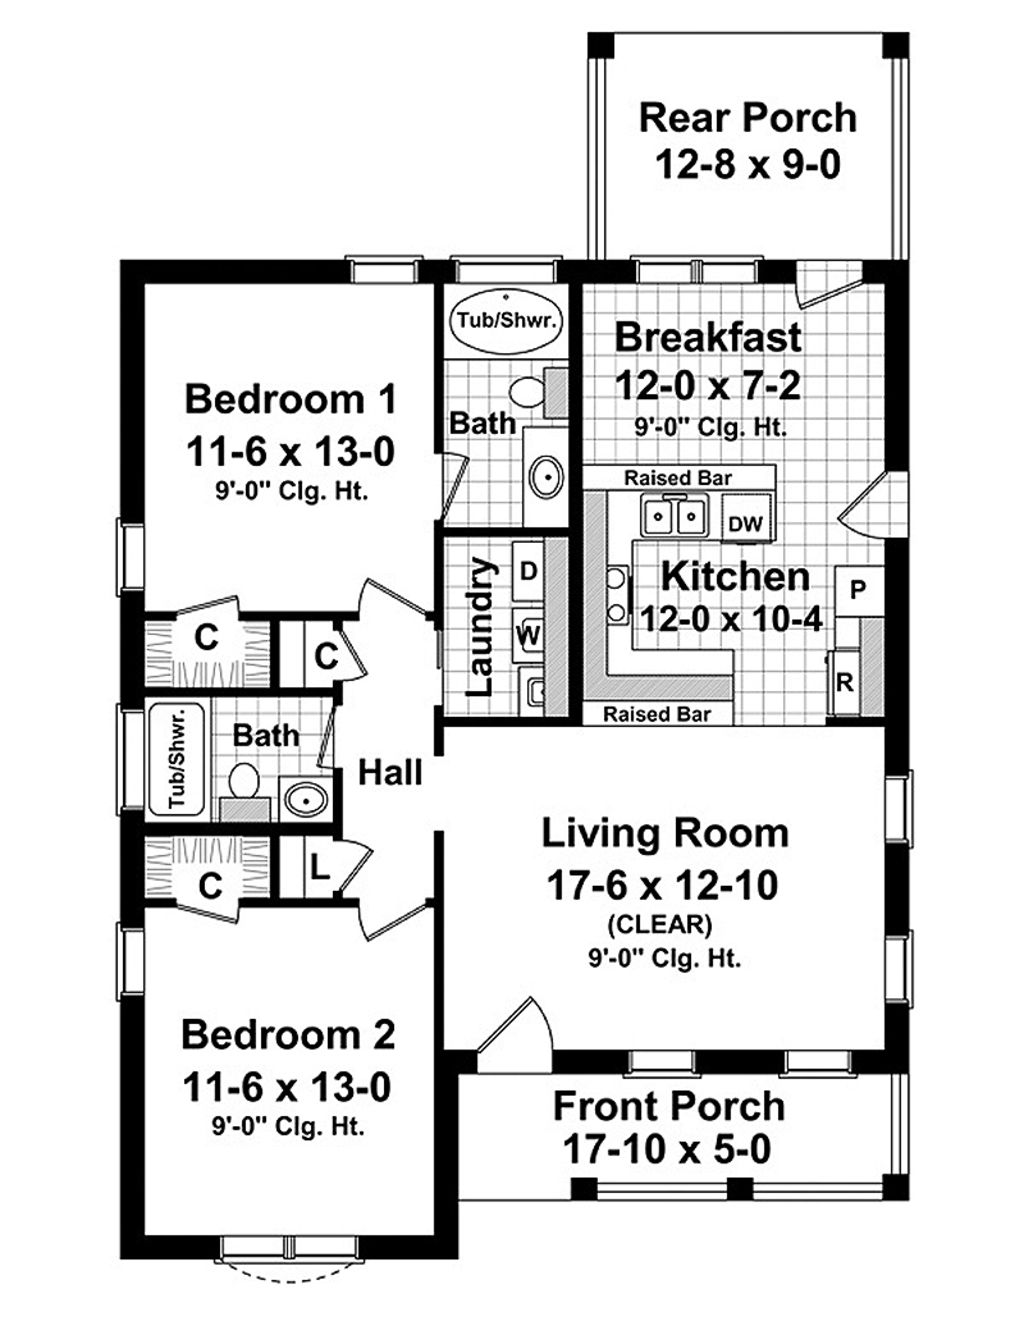 Cottage style house plan 2 beds baths 1100 sq ft for Two bedroom hall kitchen house plans